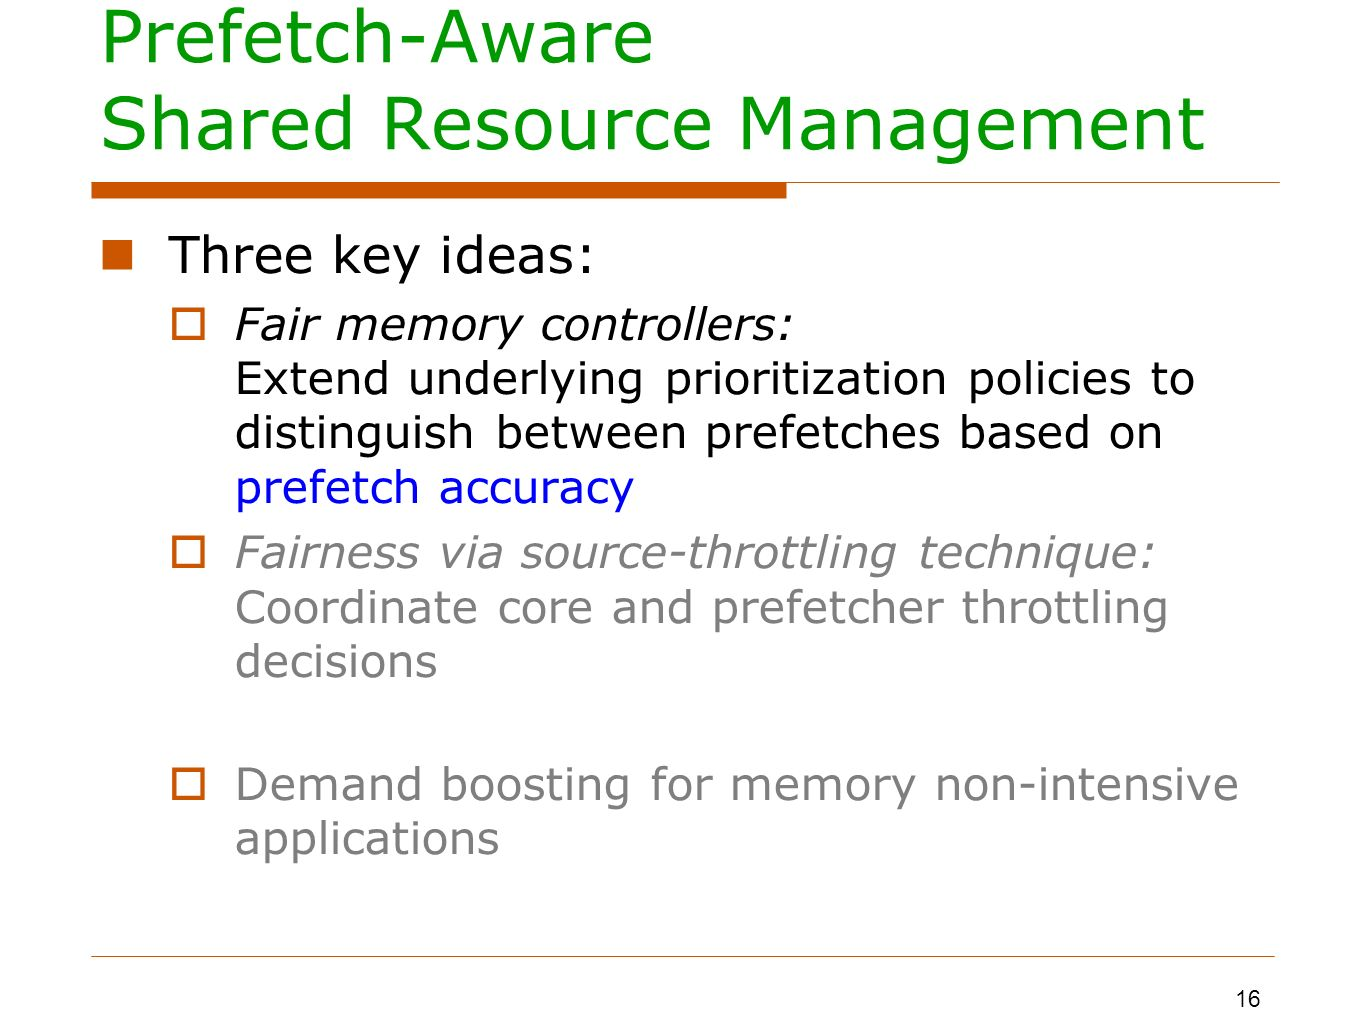 Prefetch-Aware Shared Resource Management Three key ideas: Fair memory controllers: Extend underlying prioritization policies to distinguish between prefetches based on prefetch accuracy Fairness via source-throttling technique: Coordinate core and prefetcher throttling decisions Demand boosting for memory non-intensive applications 16